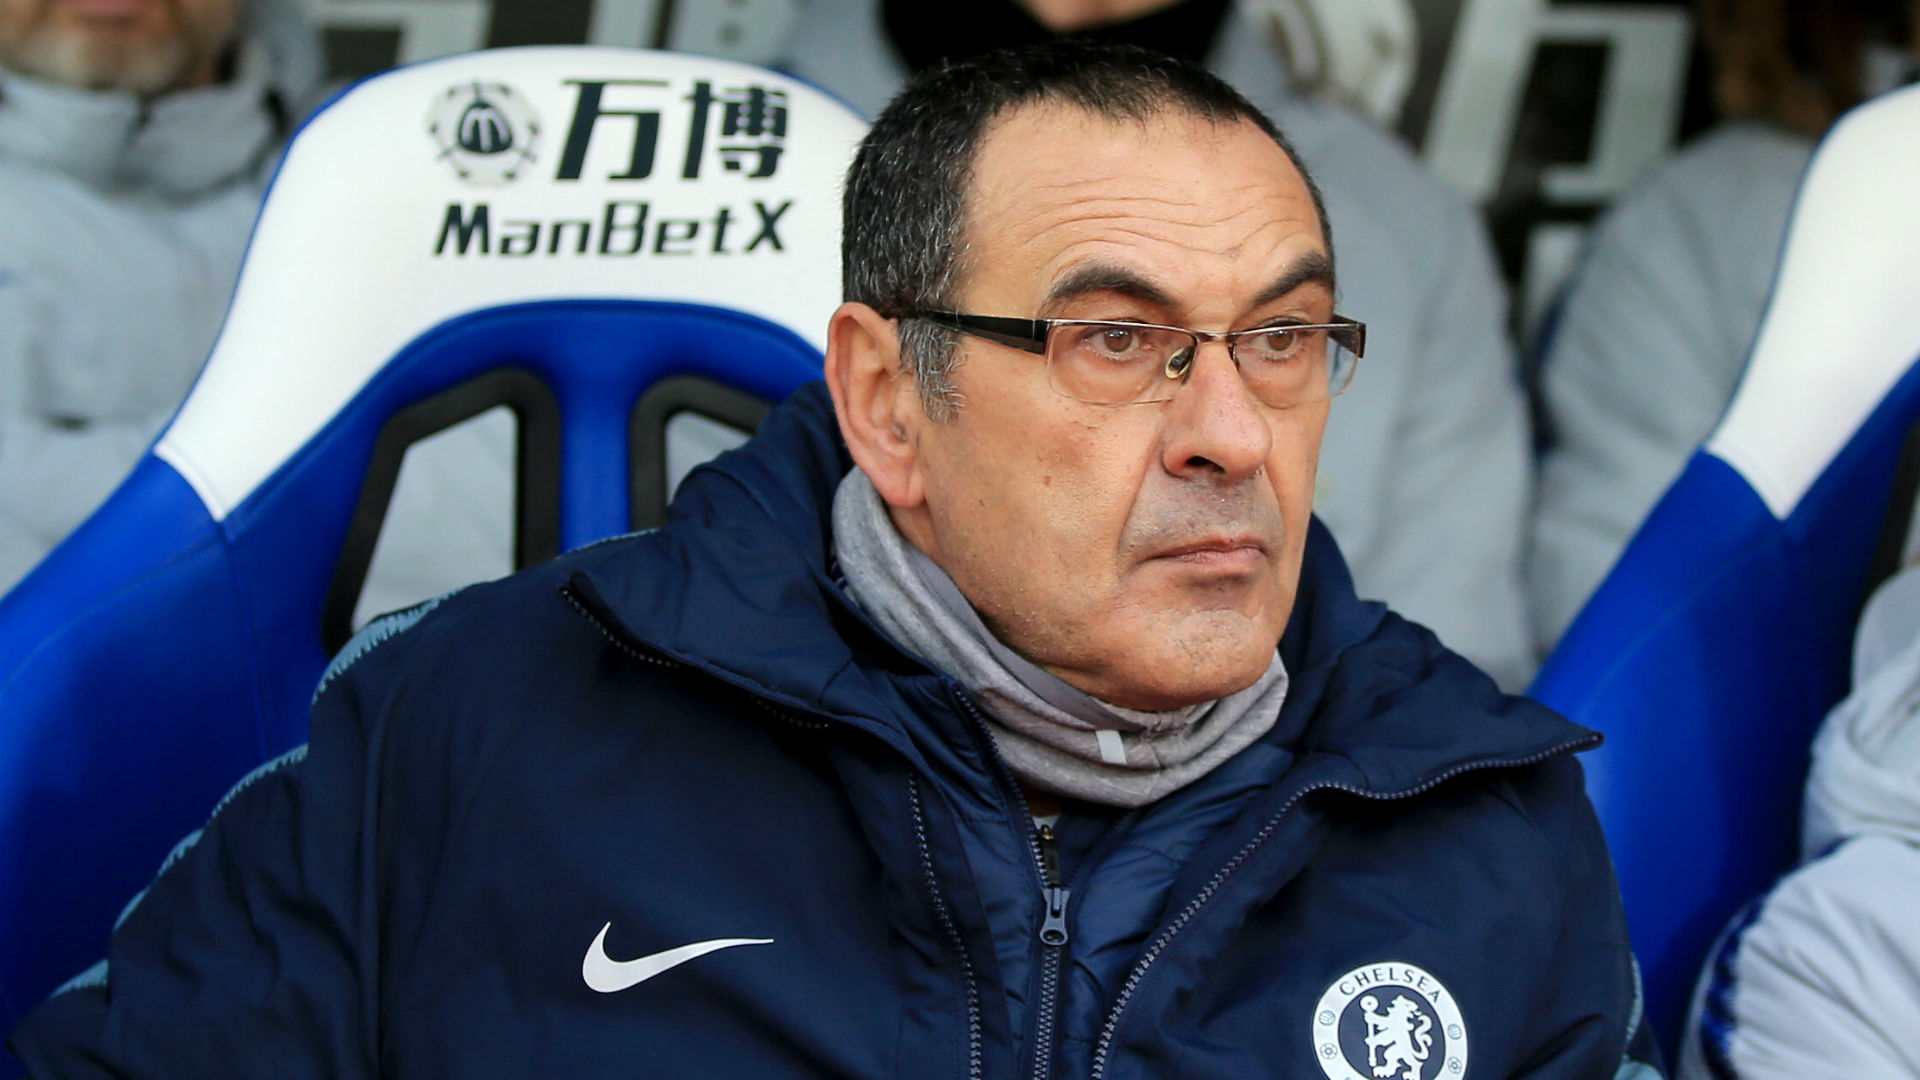 Sarri hints he wants Chelsea to sign striker after Southampton stalemate